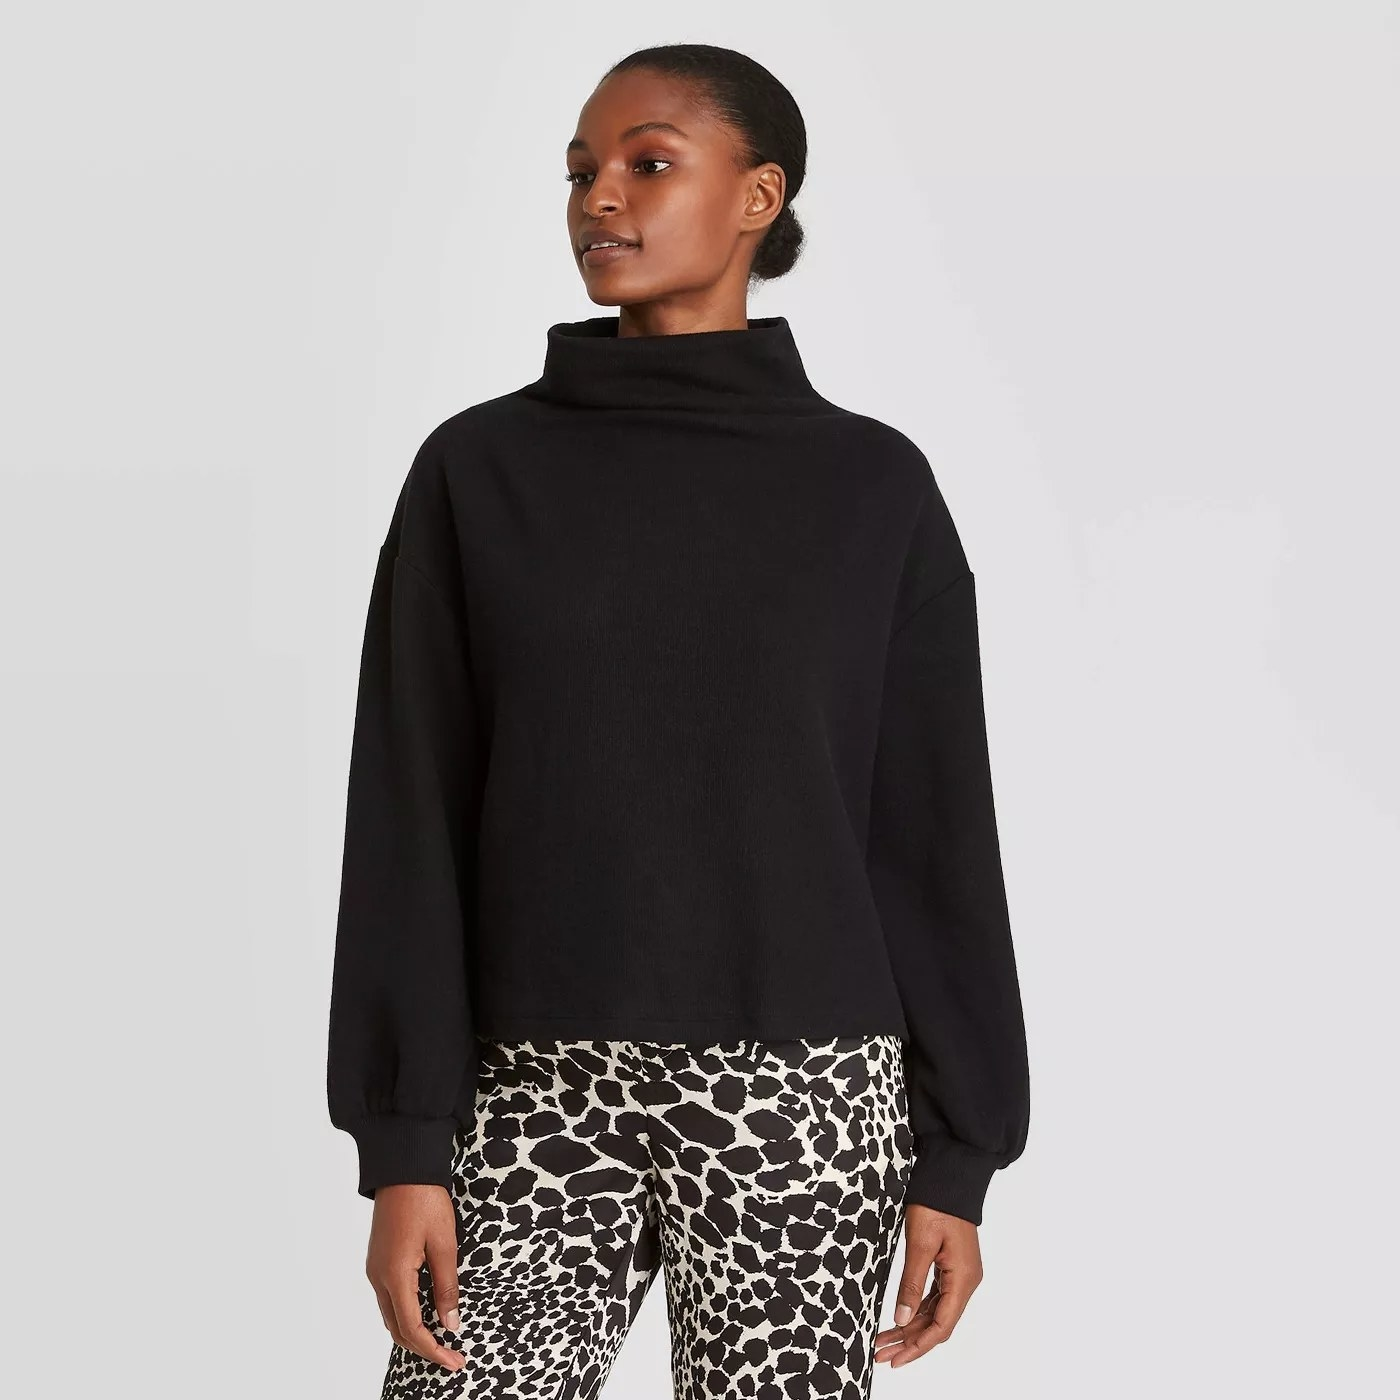 The black sweater with a high neck